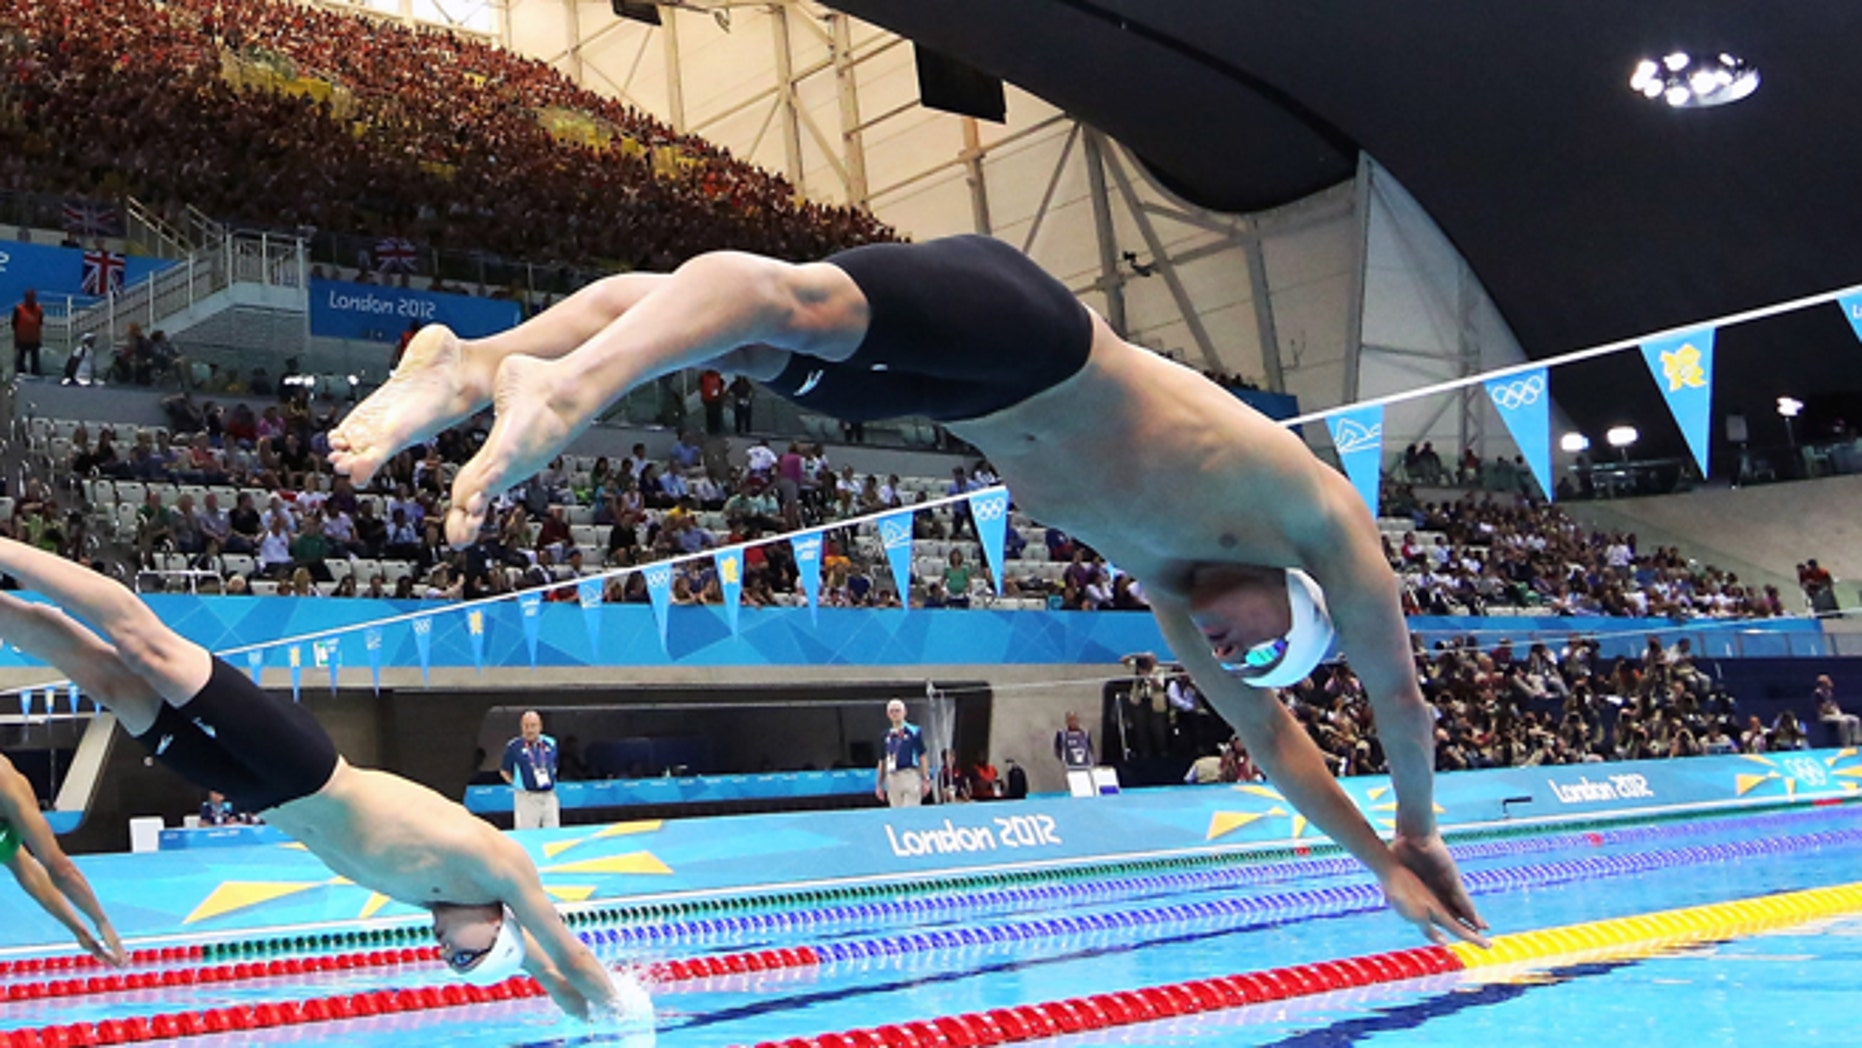 July 28, 2012: United States swimmer Ryan Lochte dives off of the starting block during the men's 400-meter individual medley event during the 2012 Summer Olympics at the Aquatics Centre in London.